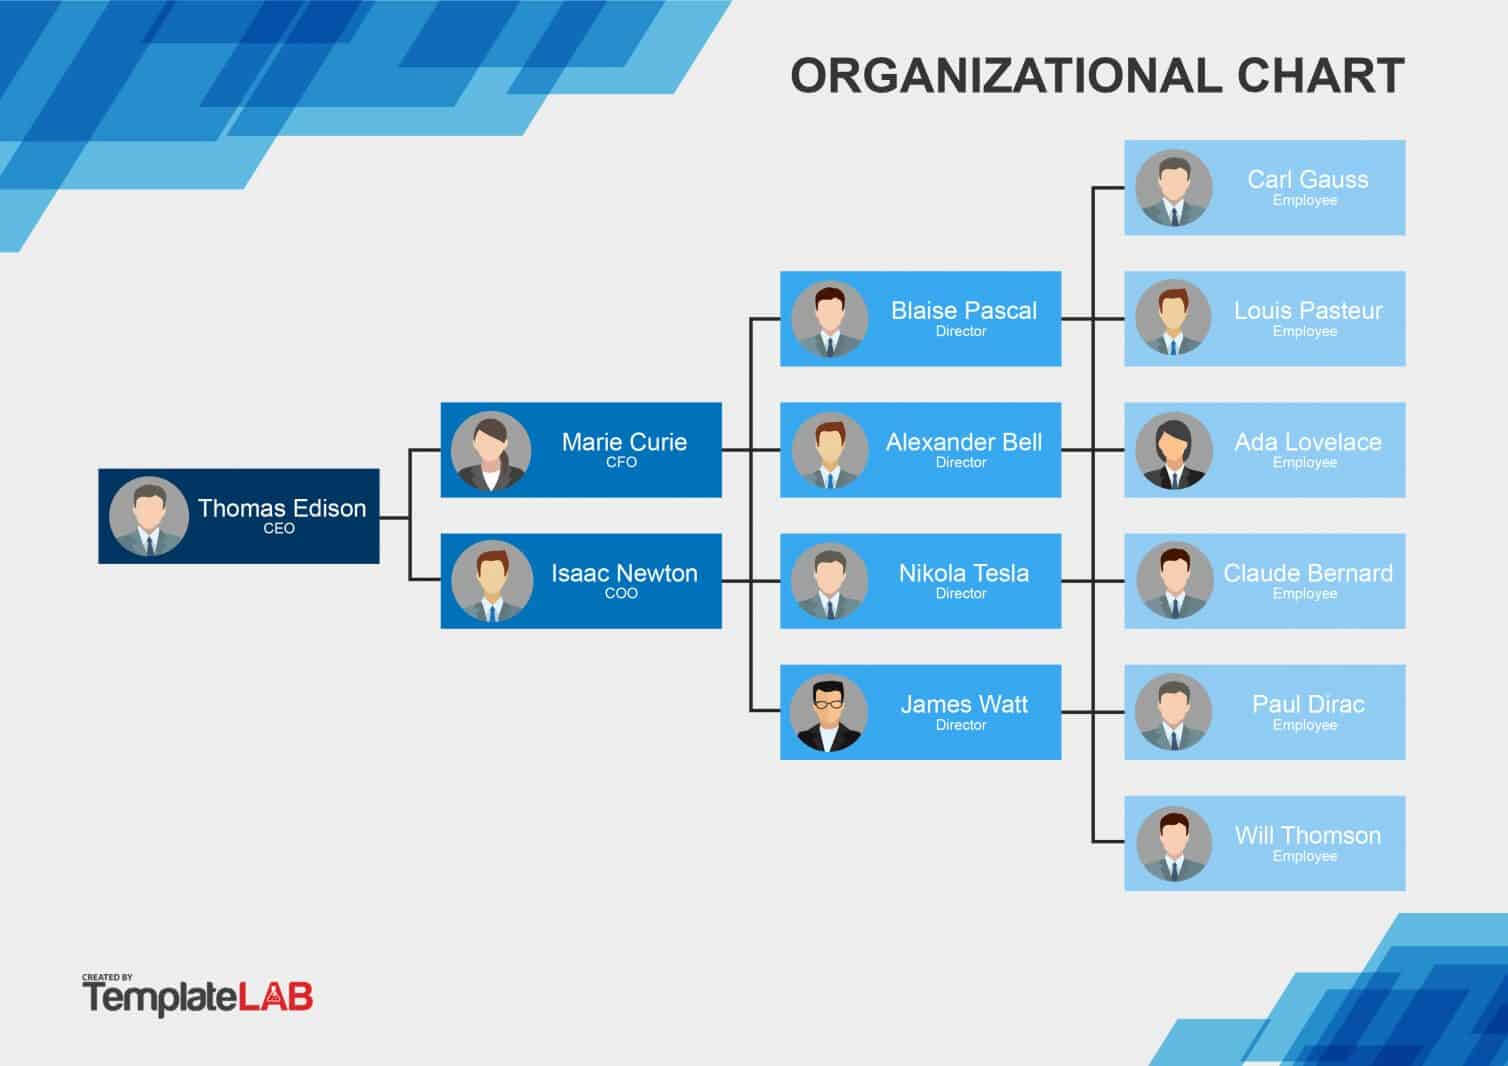 40 Organizational Chart Templates (Word, Excel, Powerpoint) Intended For Microsoft Powerpoint Org Chart Template